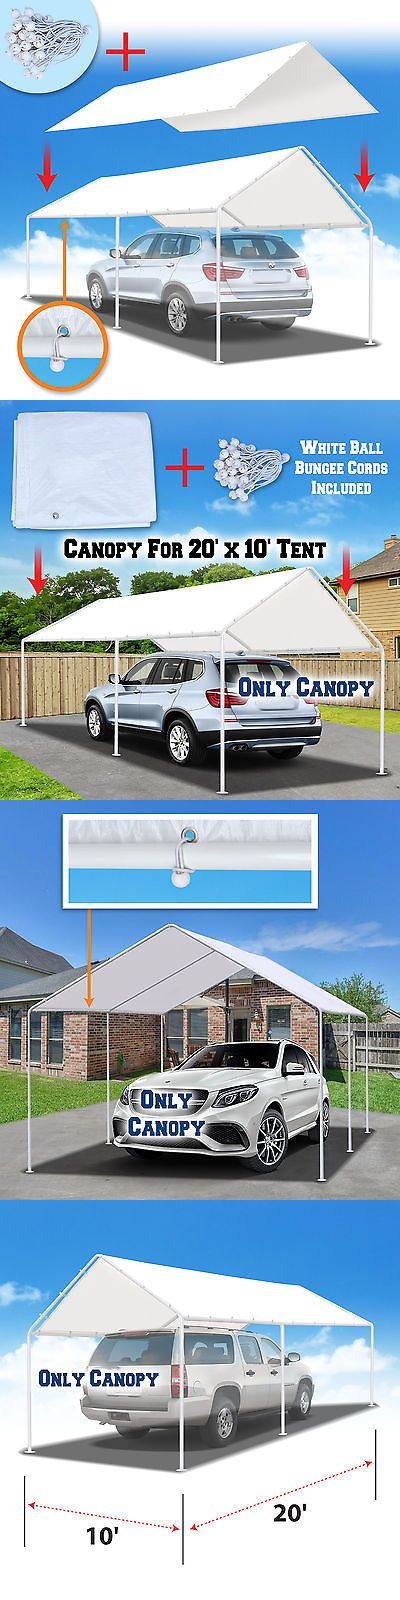 Awnings and Canopies 180992: New 10 X20 Canopy For Carport Tent Garage Tarp Top Shelter Cover W Ball Bungees -> BUY IT NOW ONLY: $49.99 on eBay!